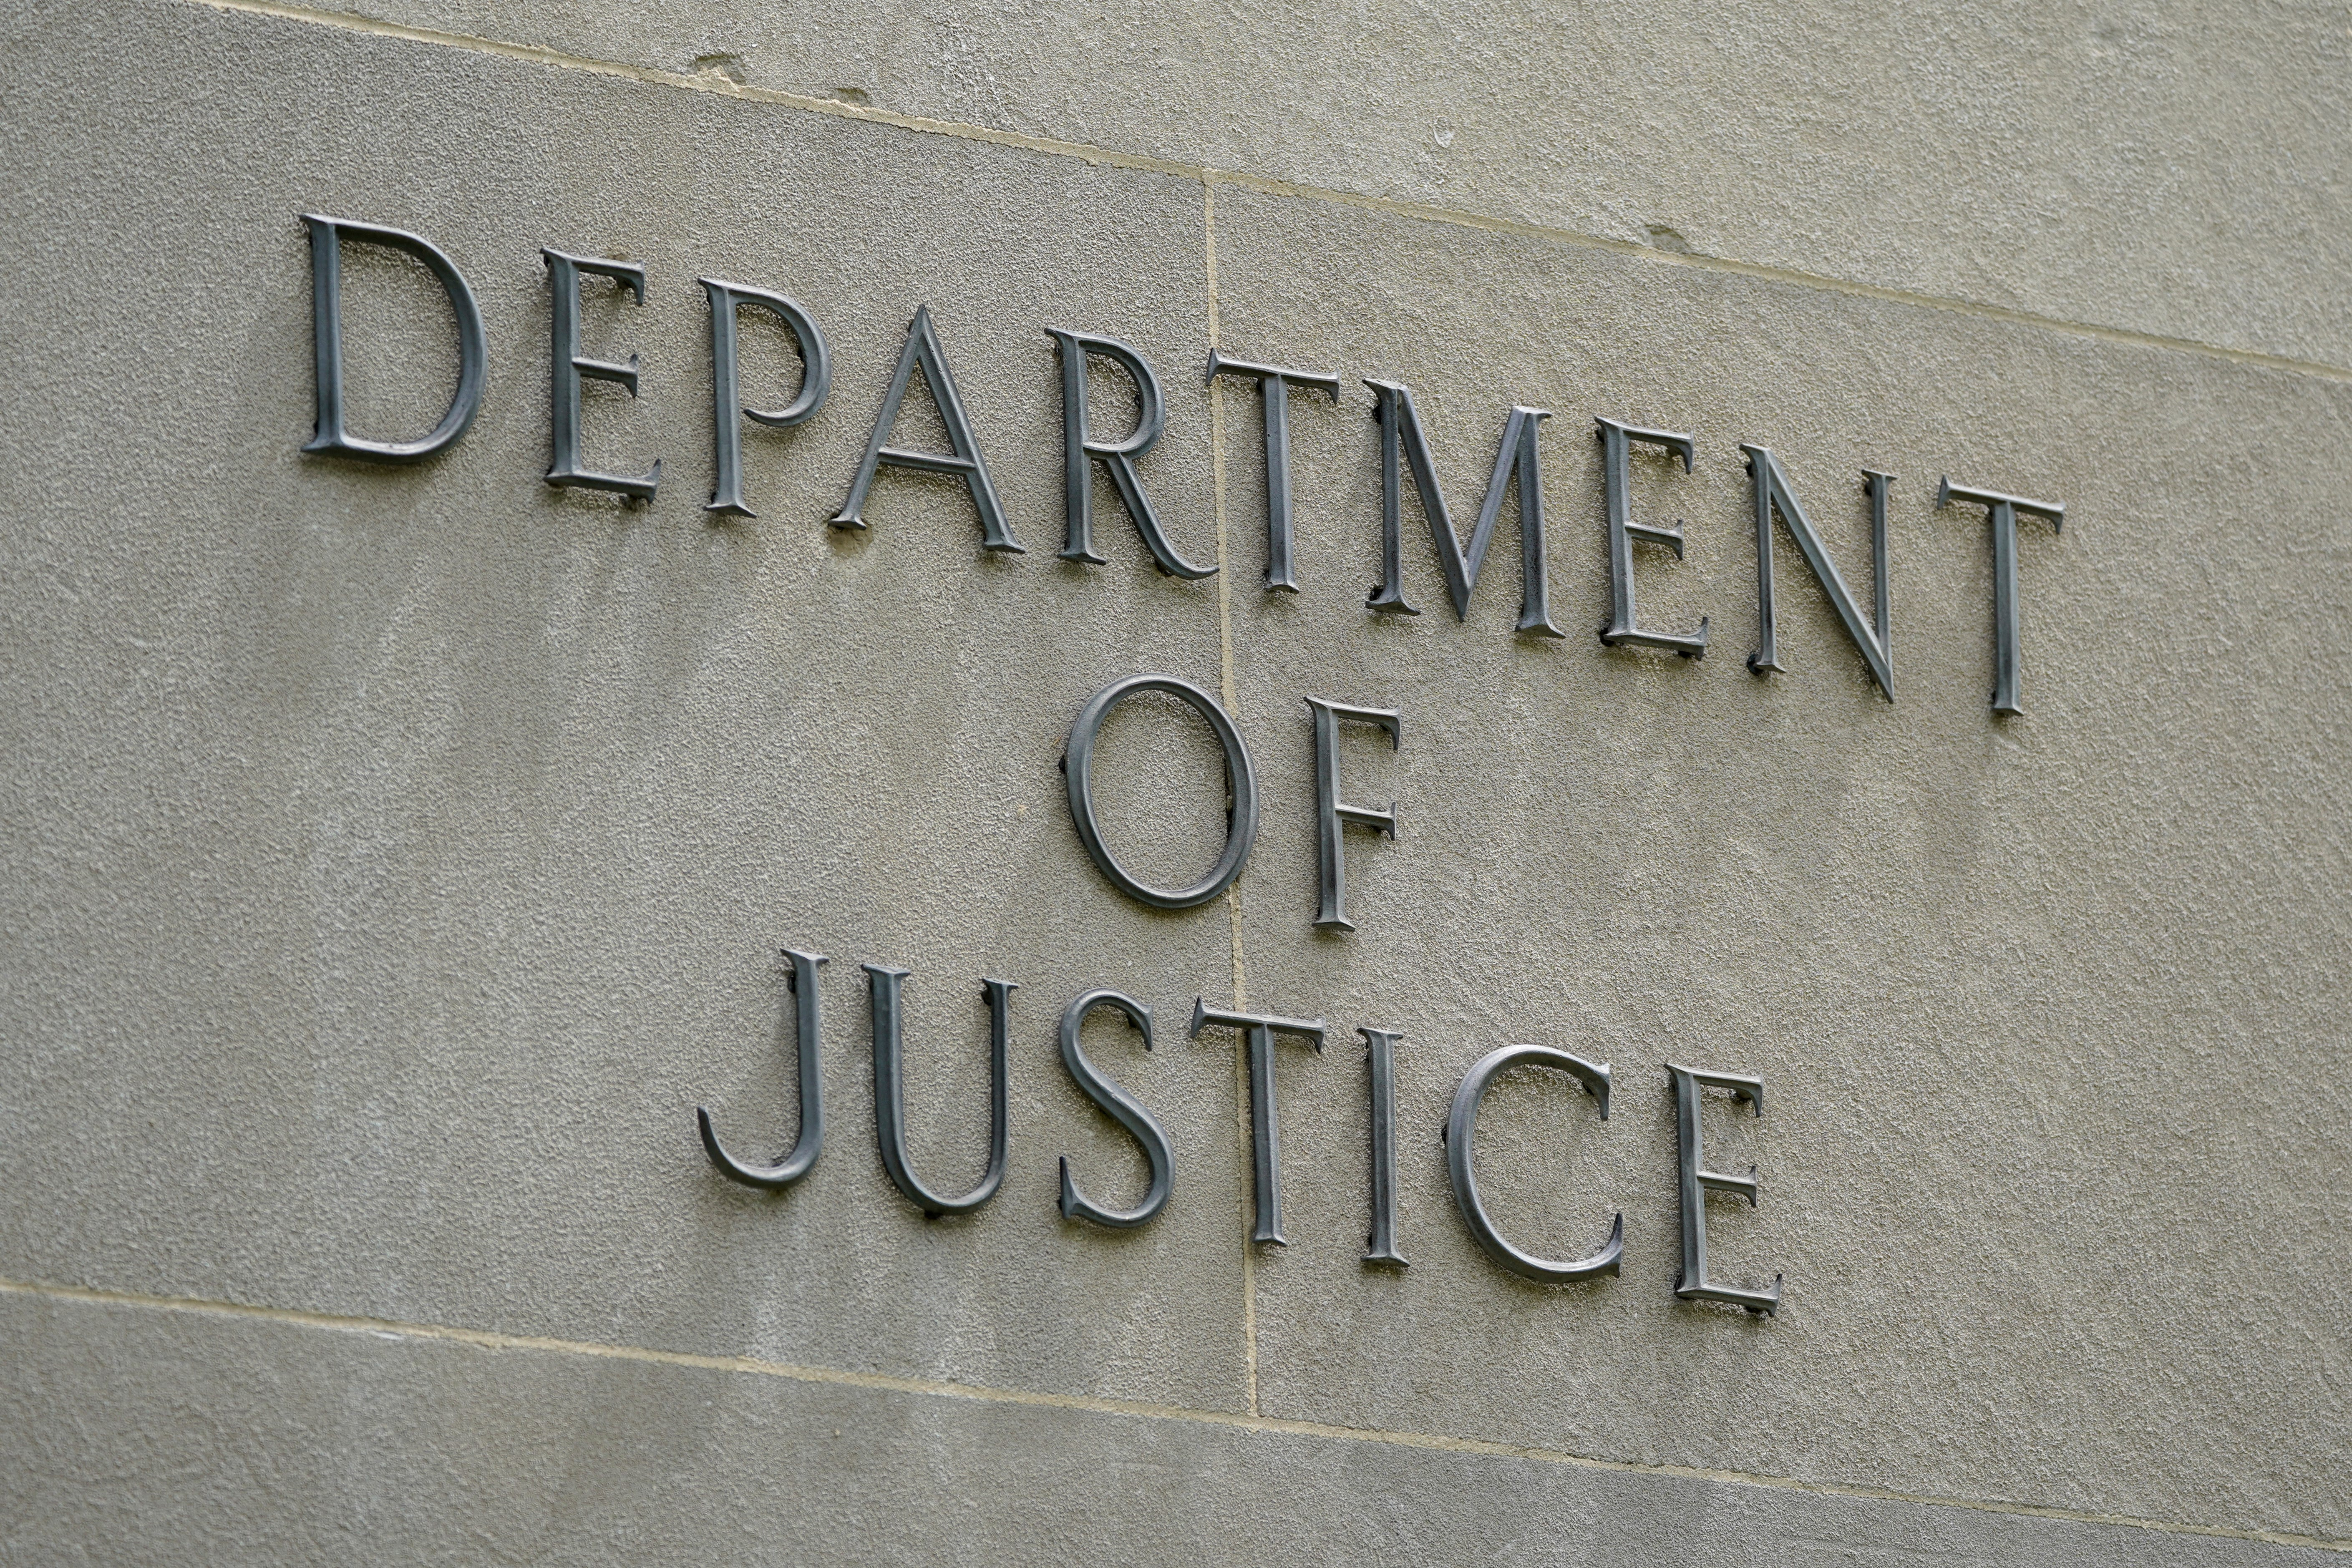 Trump Justice Department secretly obtained Post reporters' phone records 1